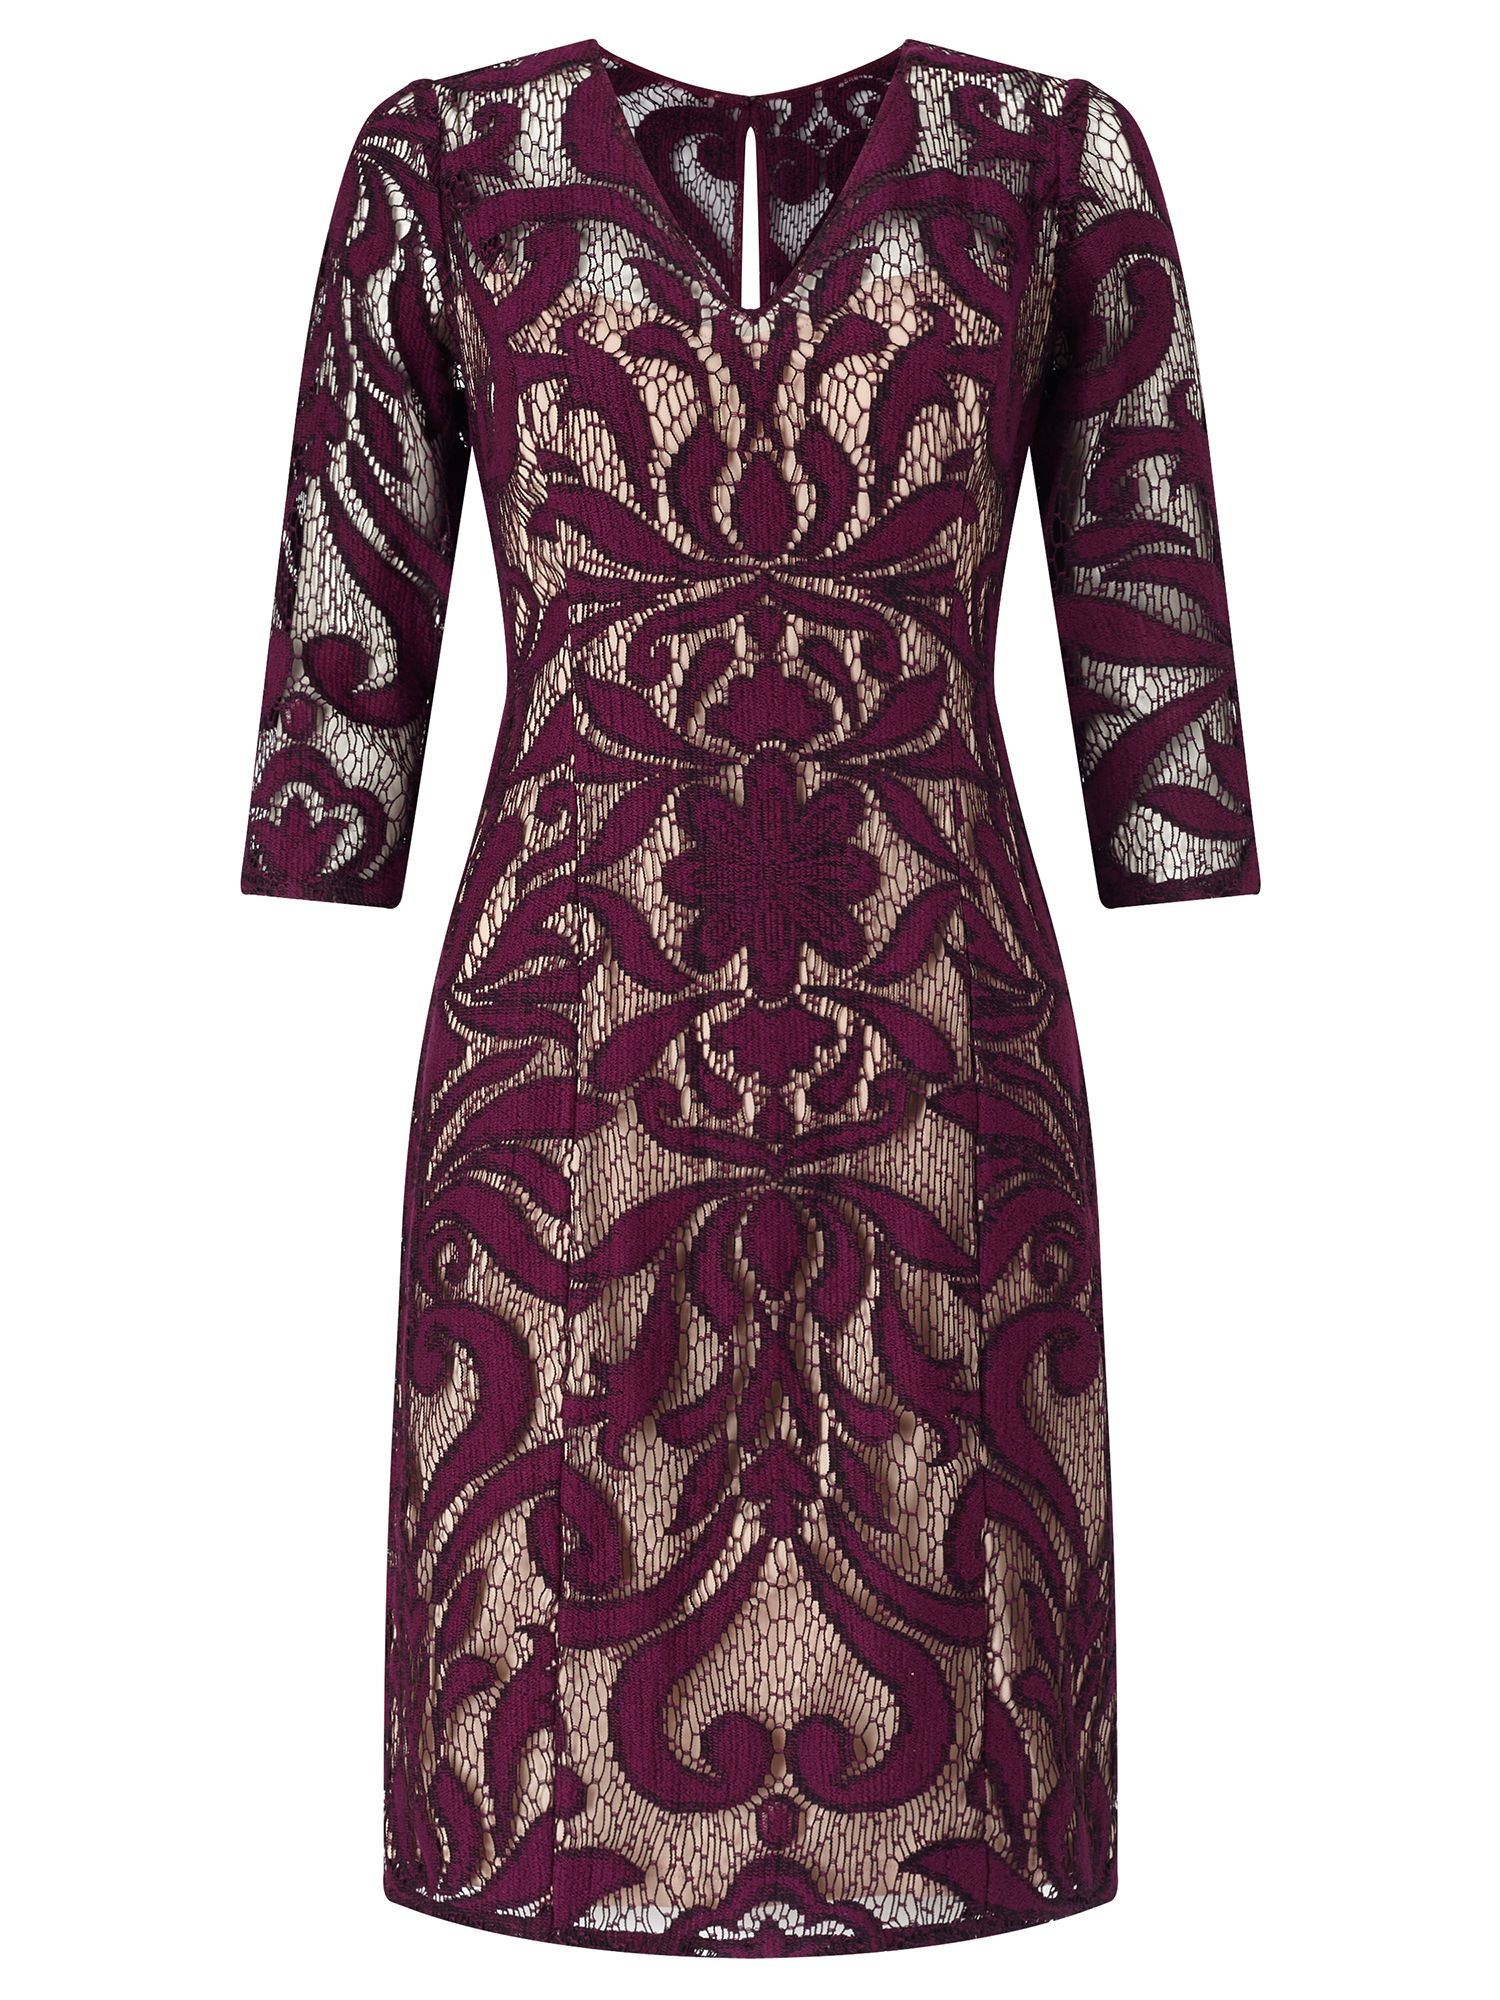 Adrianna Papell 3/4 sleeve lace dress, Multi-Coloured